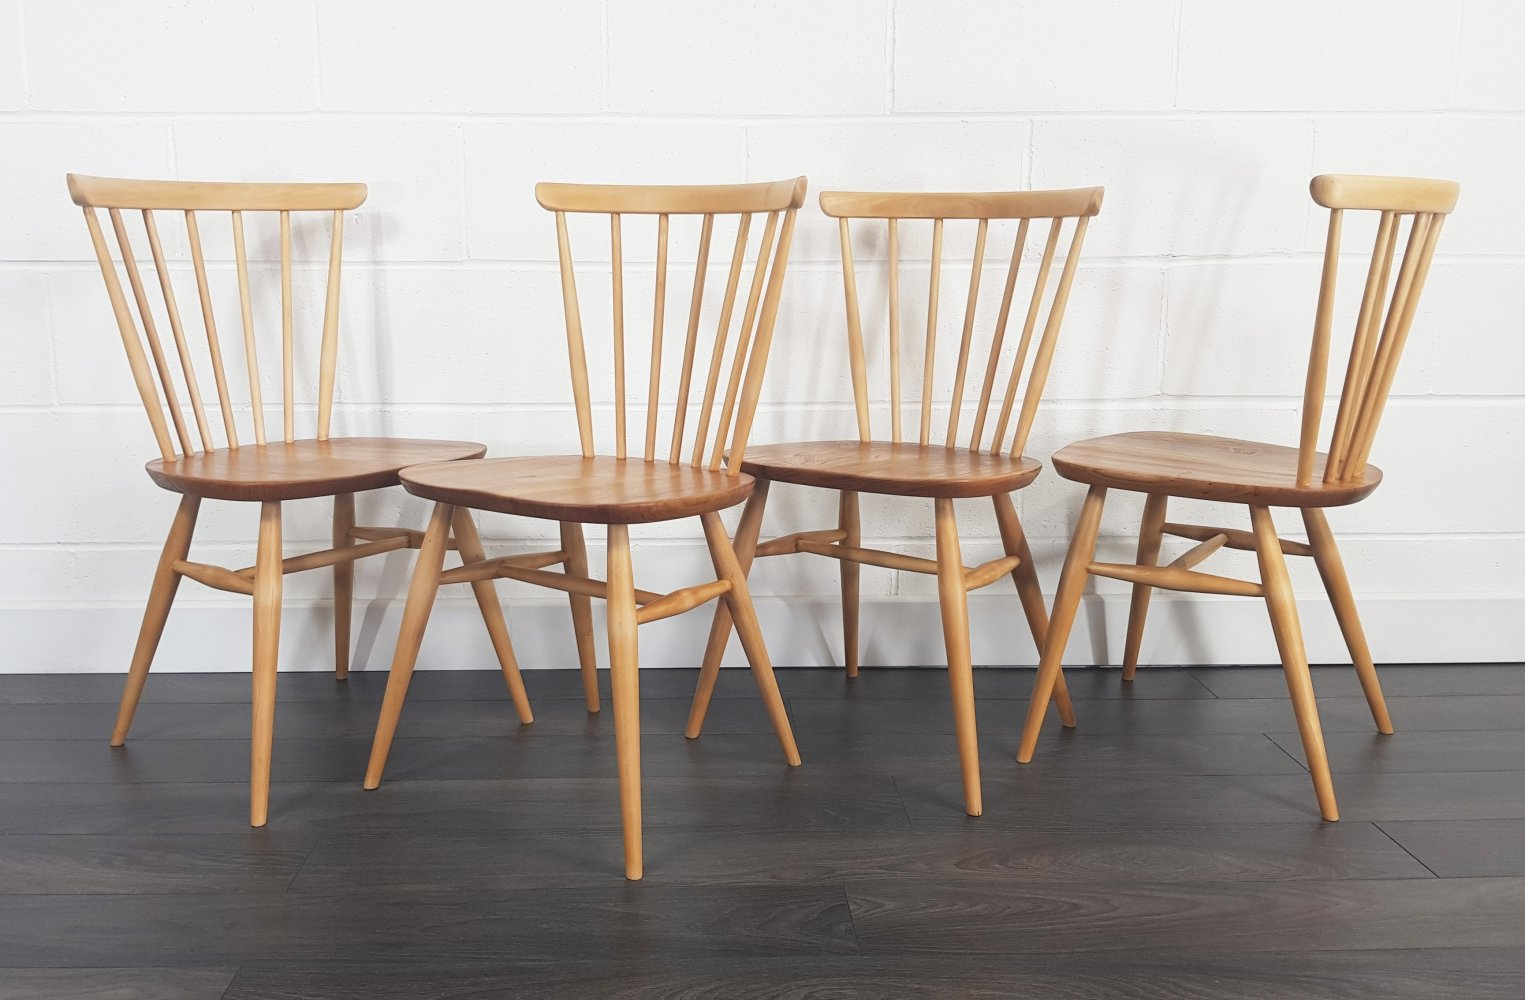 Set of 4 Windsor Bow Top Dining Chairs by Lucian Ercolani for Ercol, 1960s